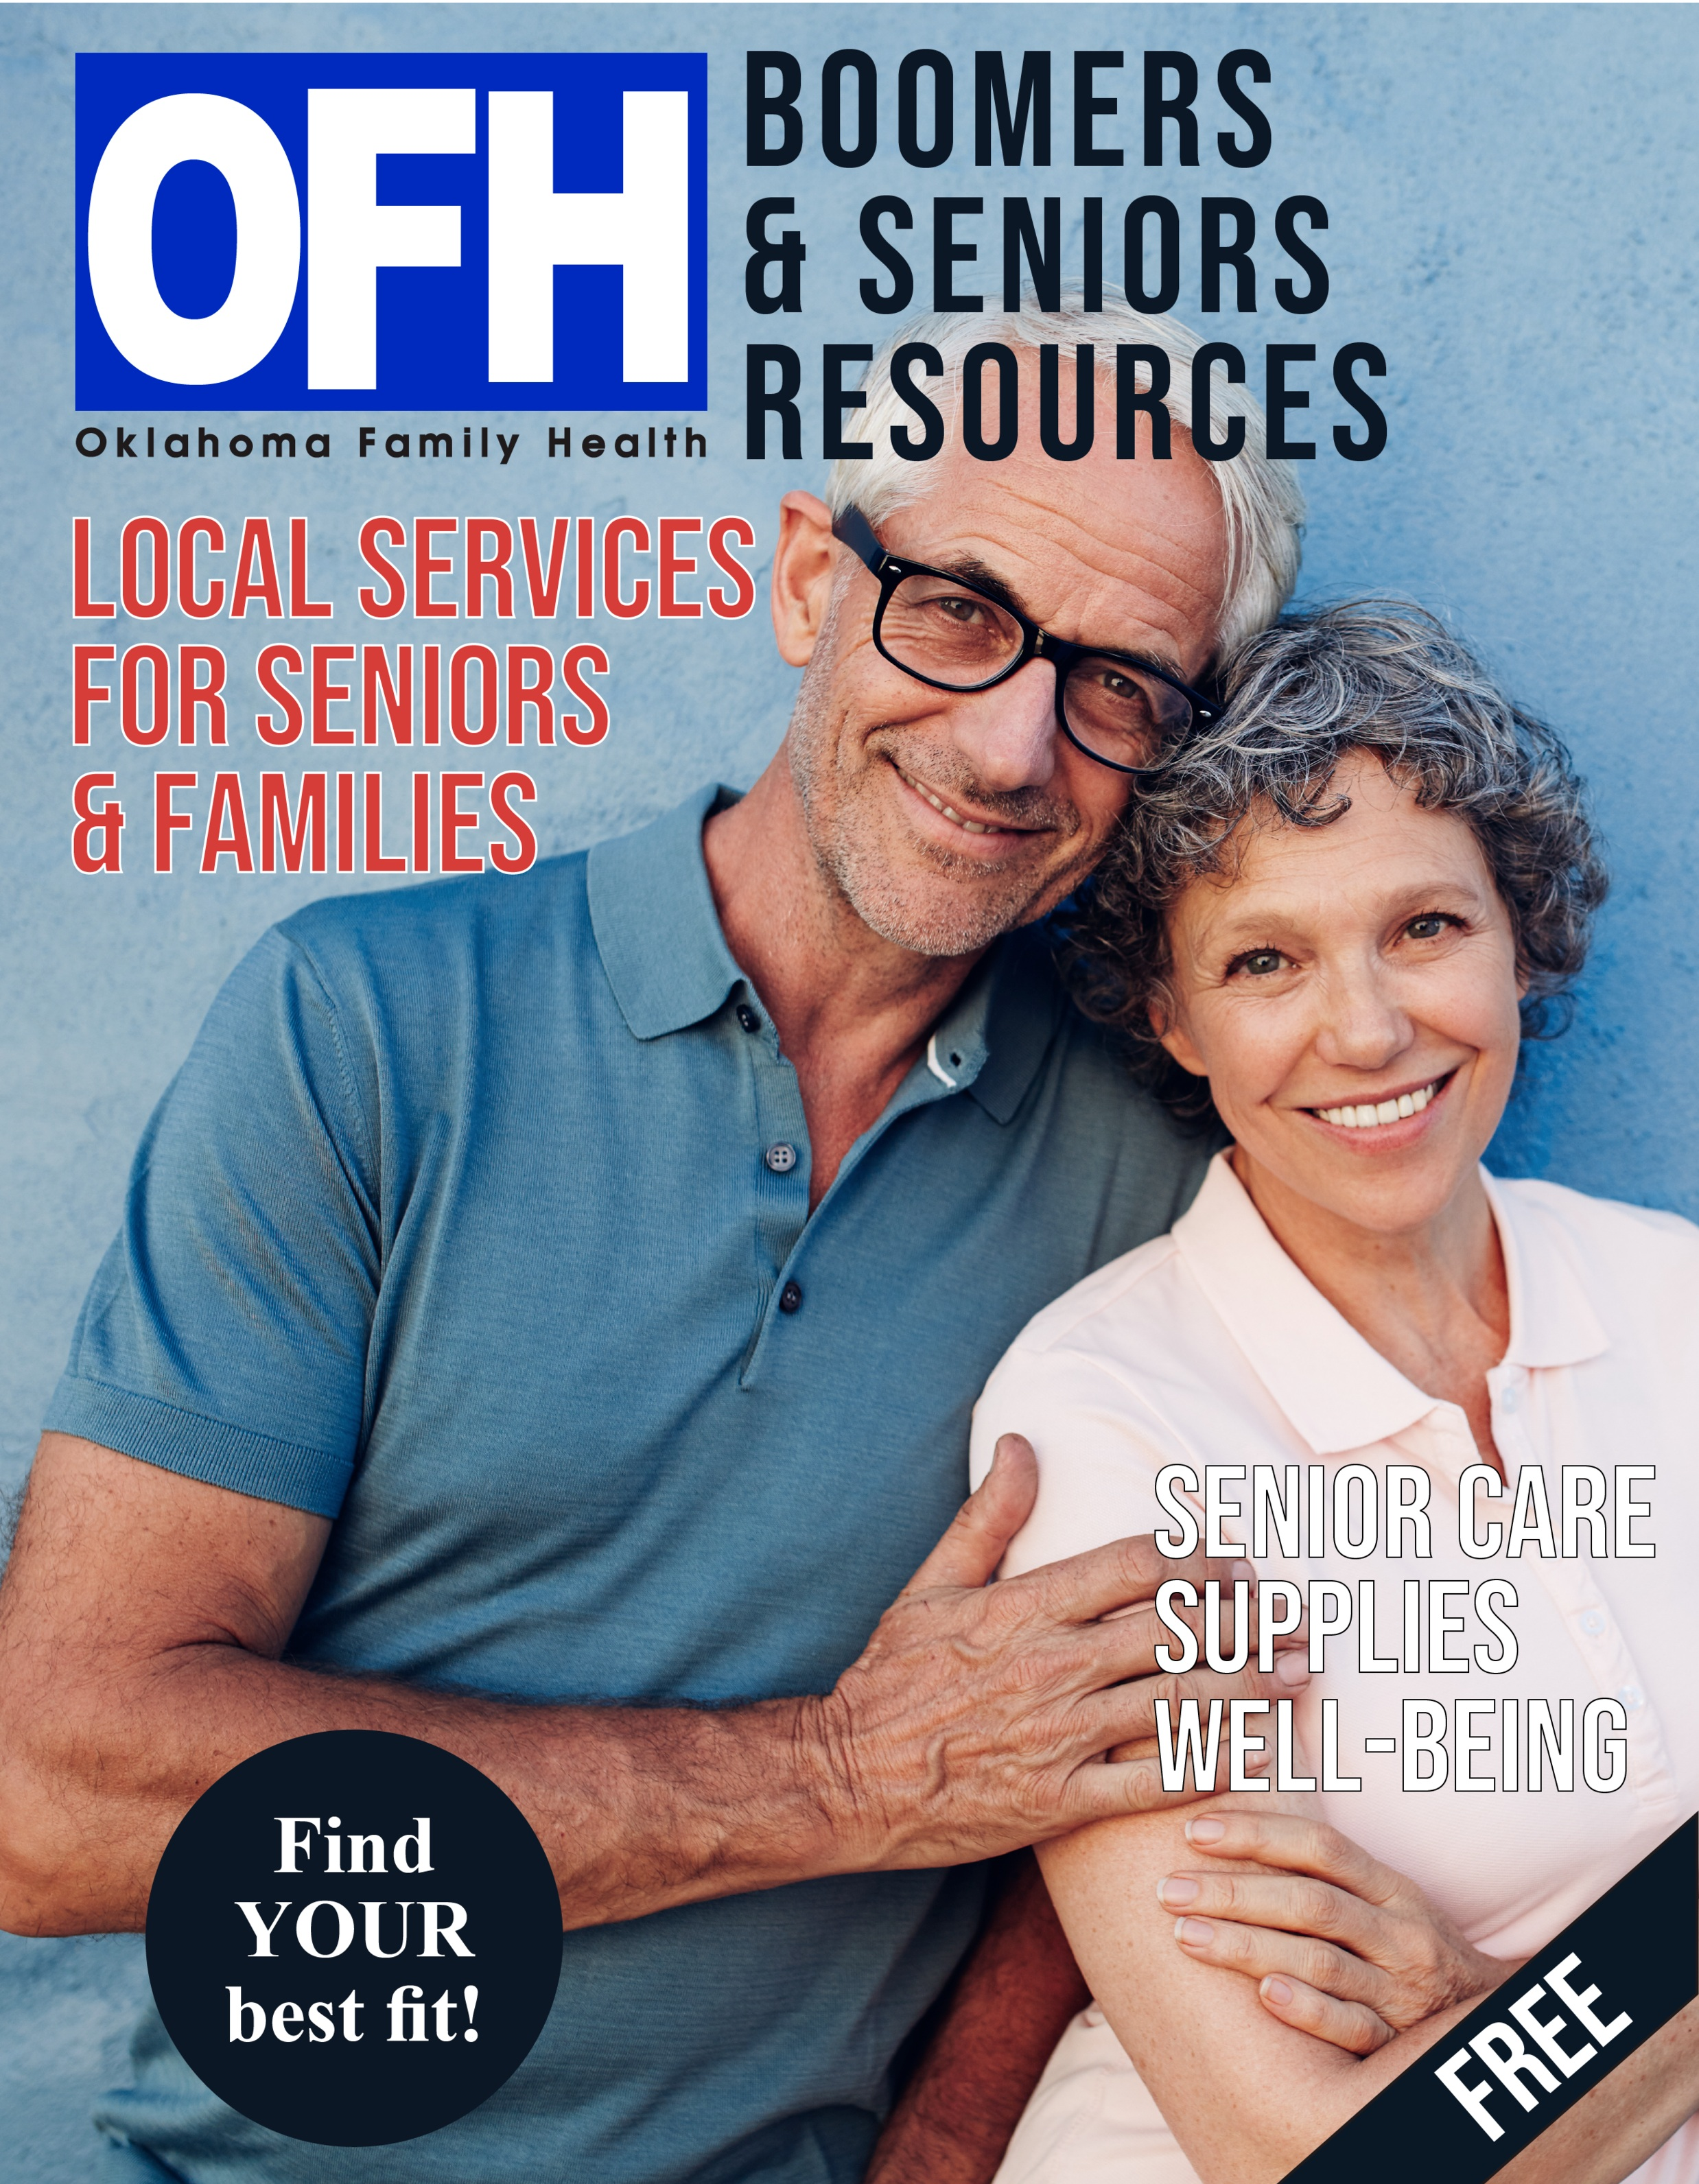 OFH+Boomers+Seniors+Cover.jpg